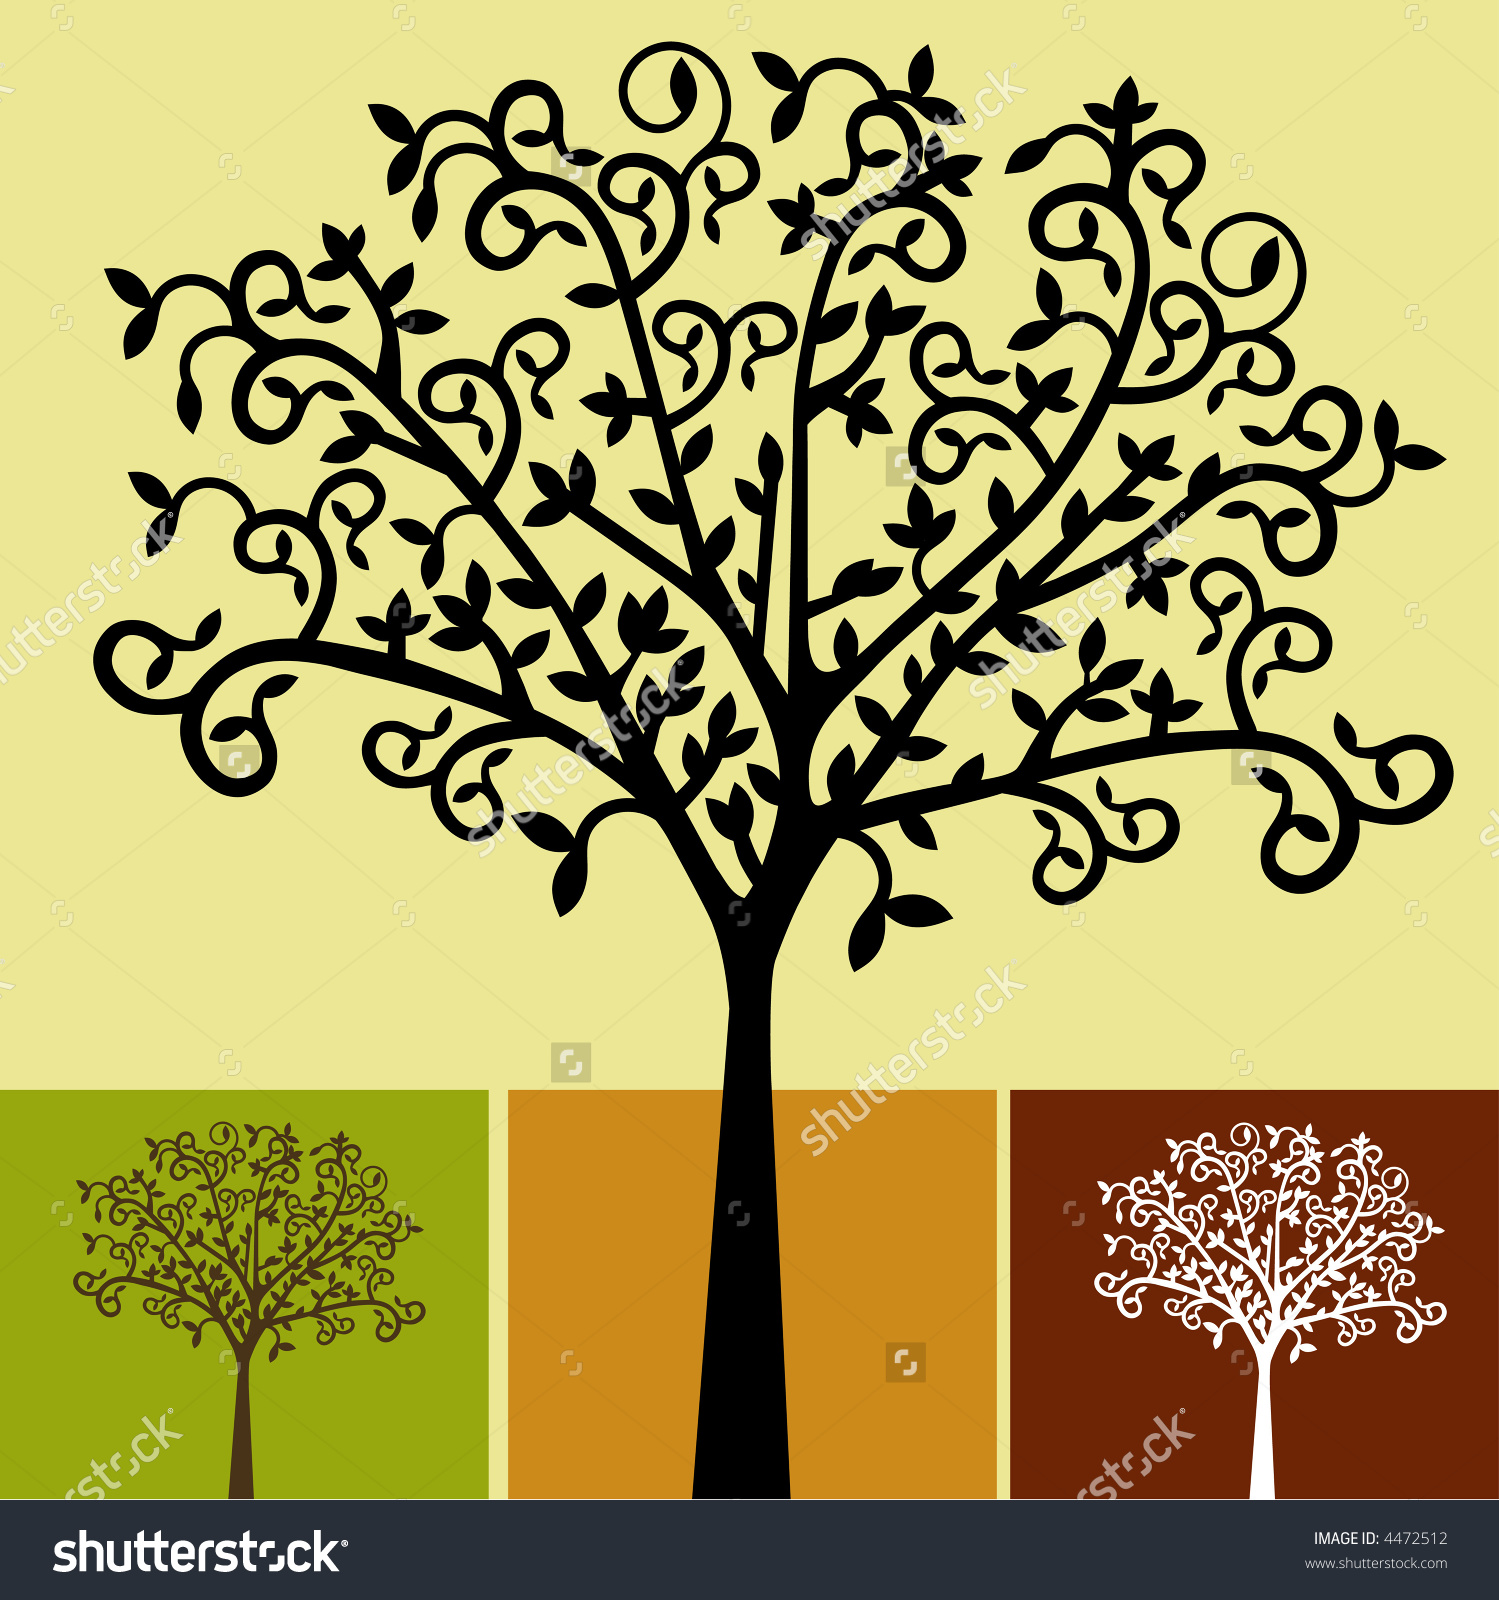 Choices Of Tree Colors Vector.